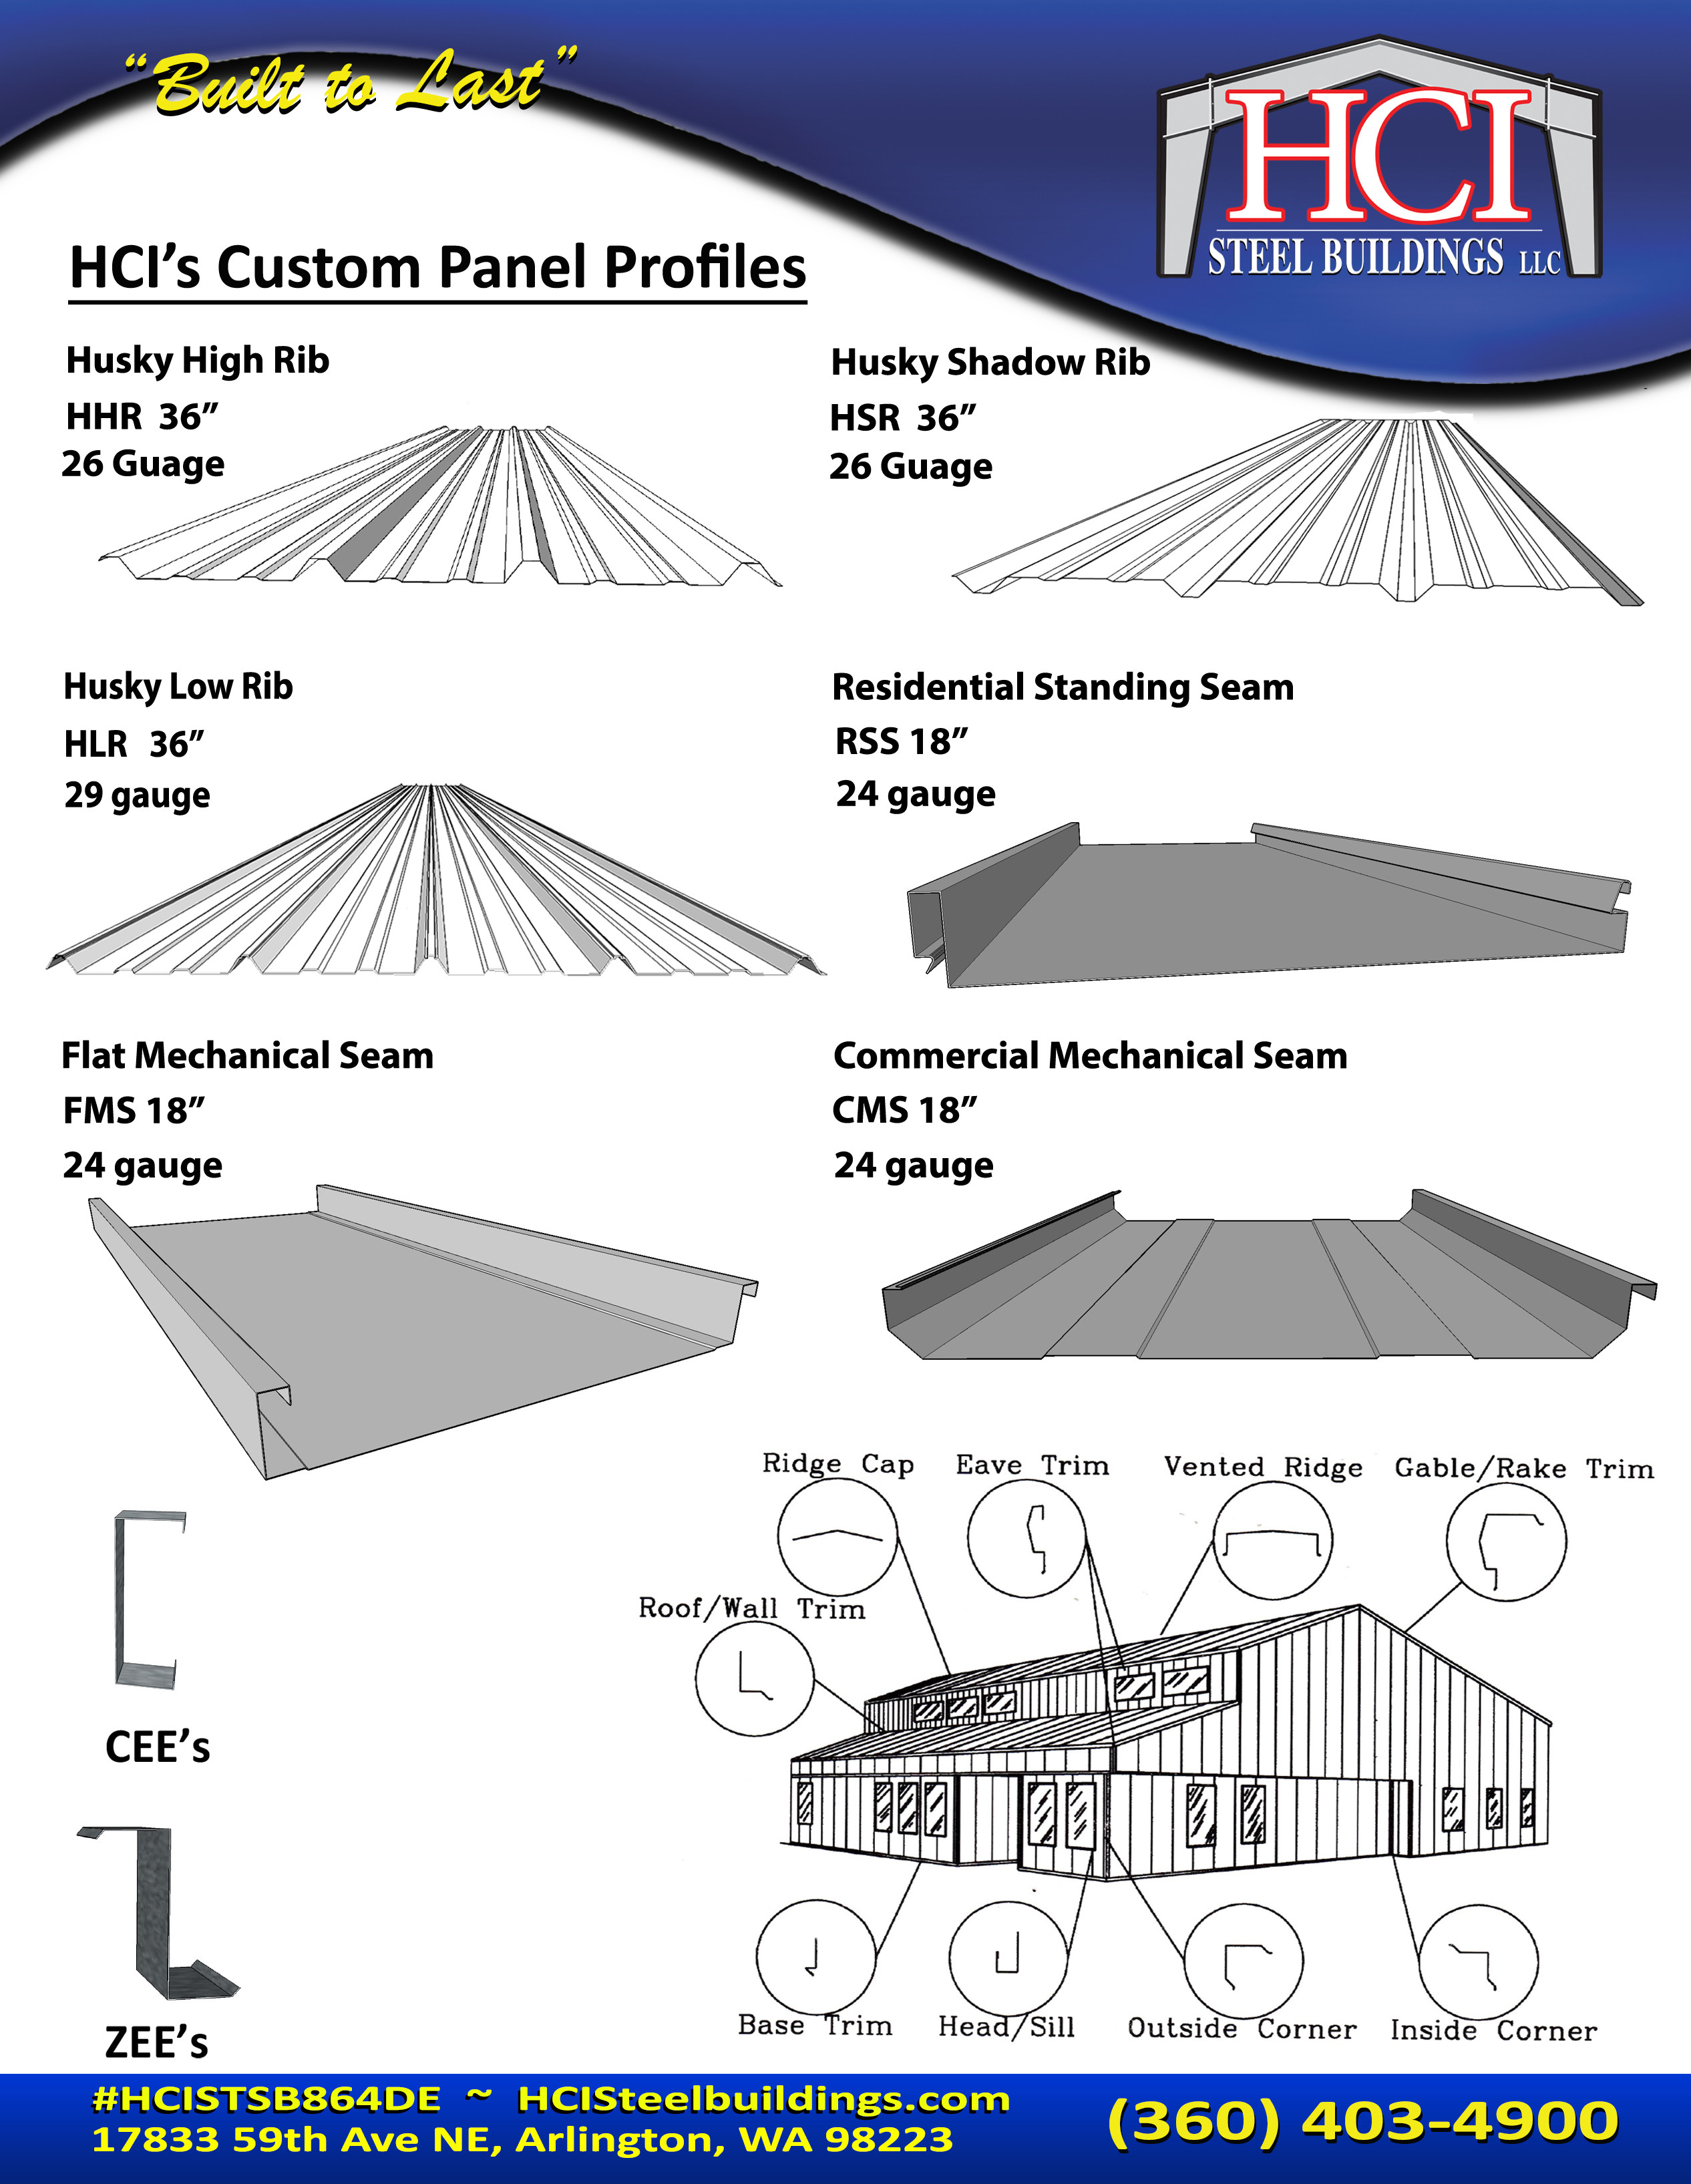 Hci Steel Buildings Manufactures And Delivers Metal Siding